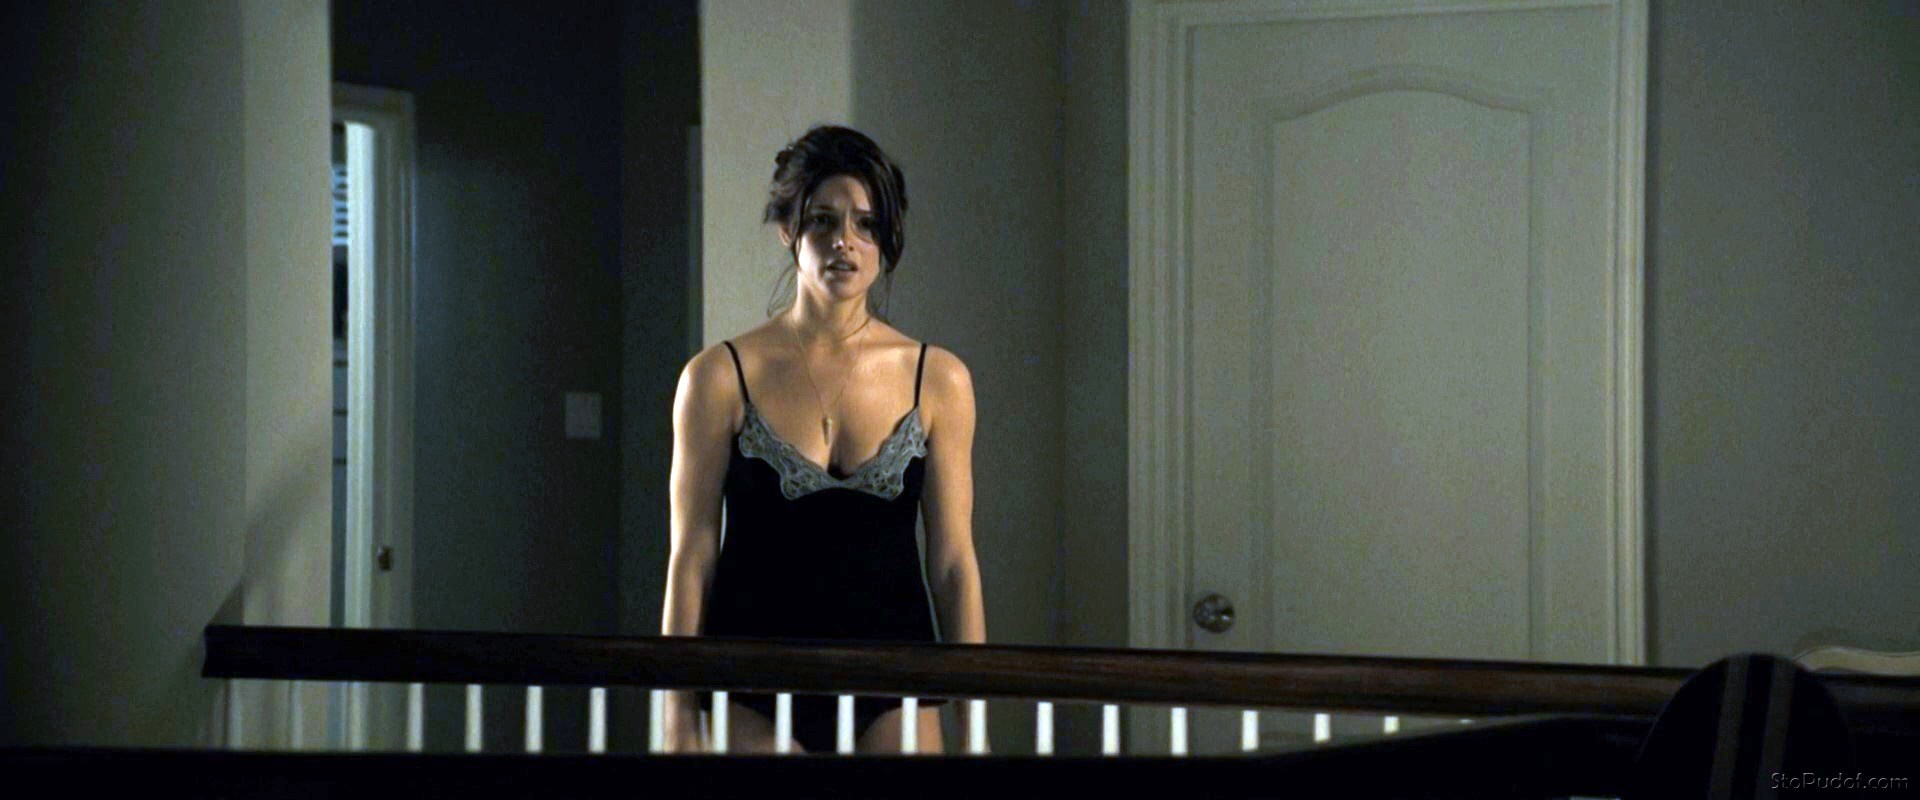 see naked Ashley Greene pictures - UkPhotoSafari